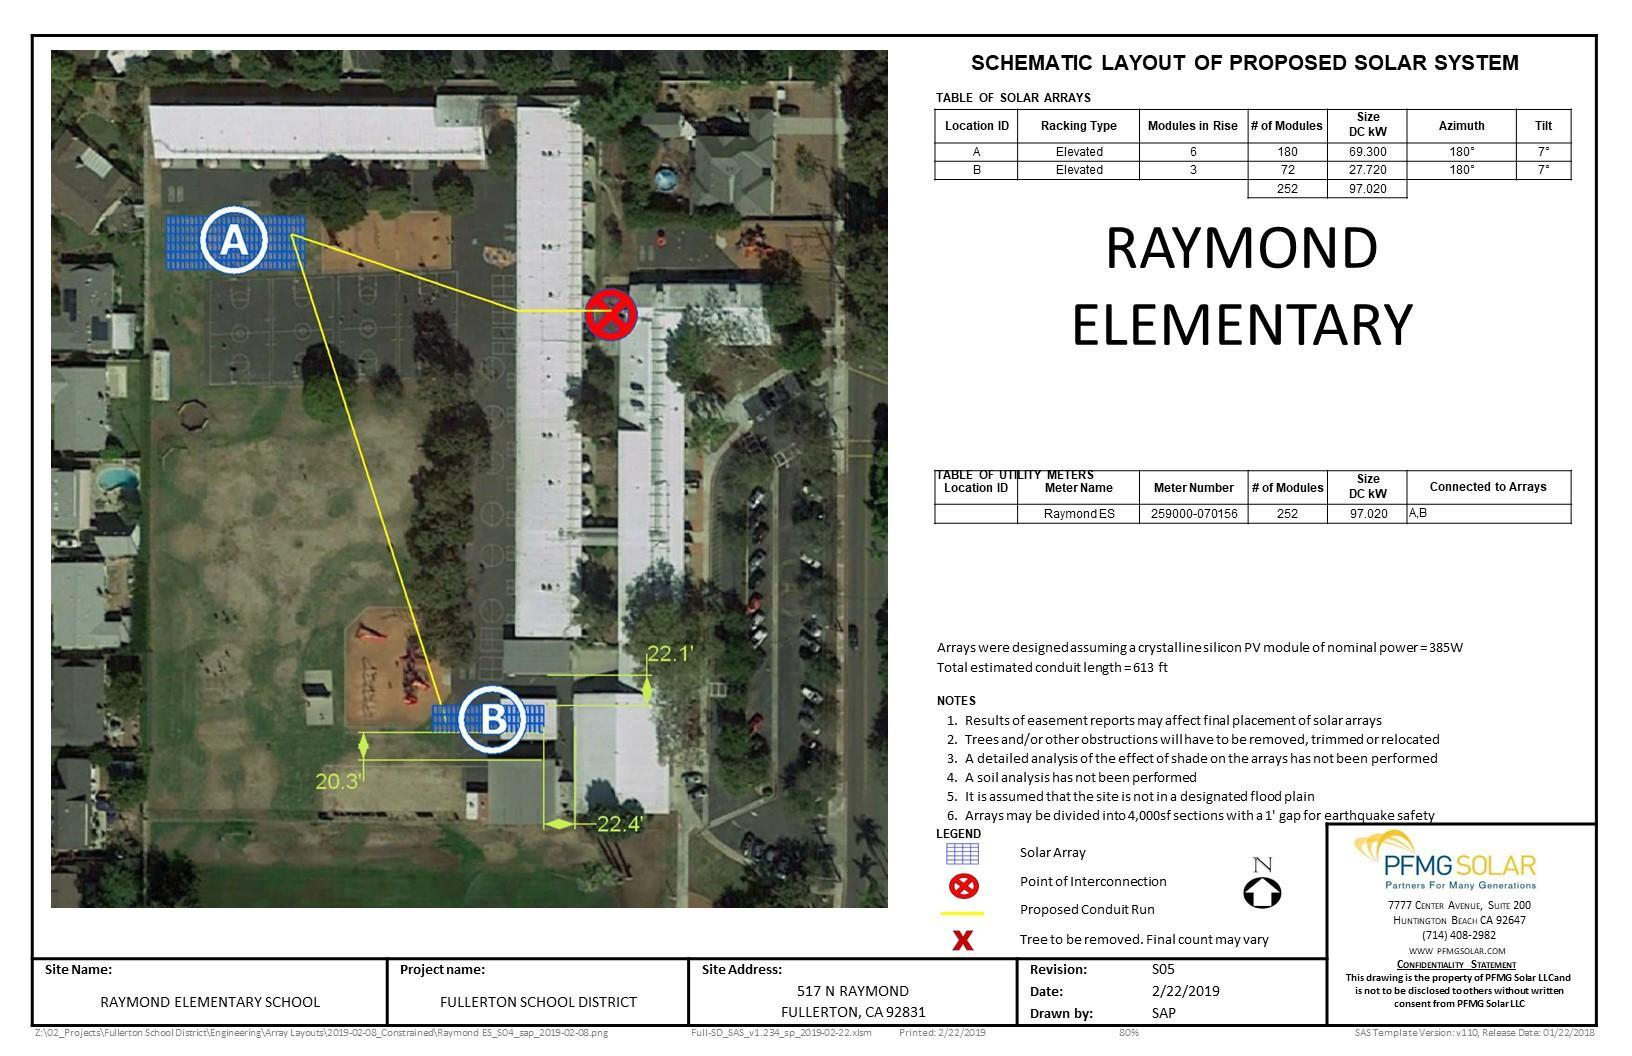 Raymond Elementary Schematic Layout of Proposed Solar System